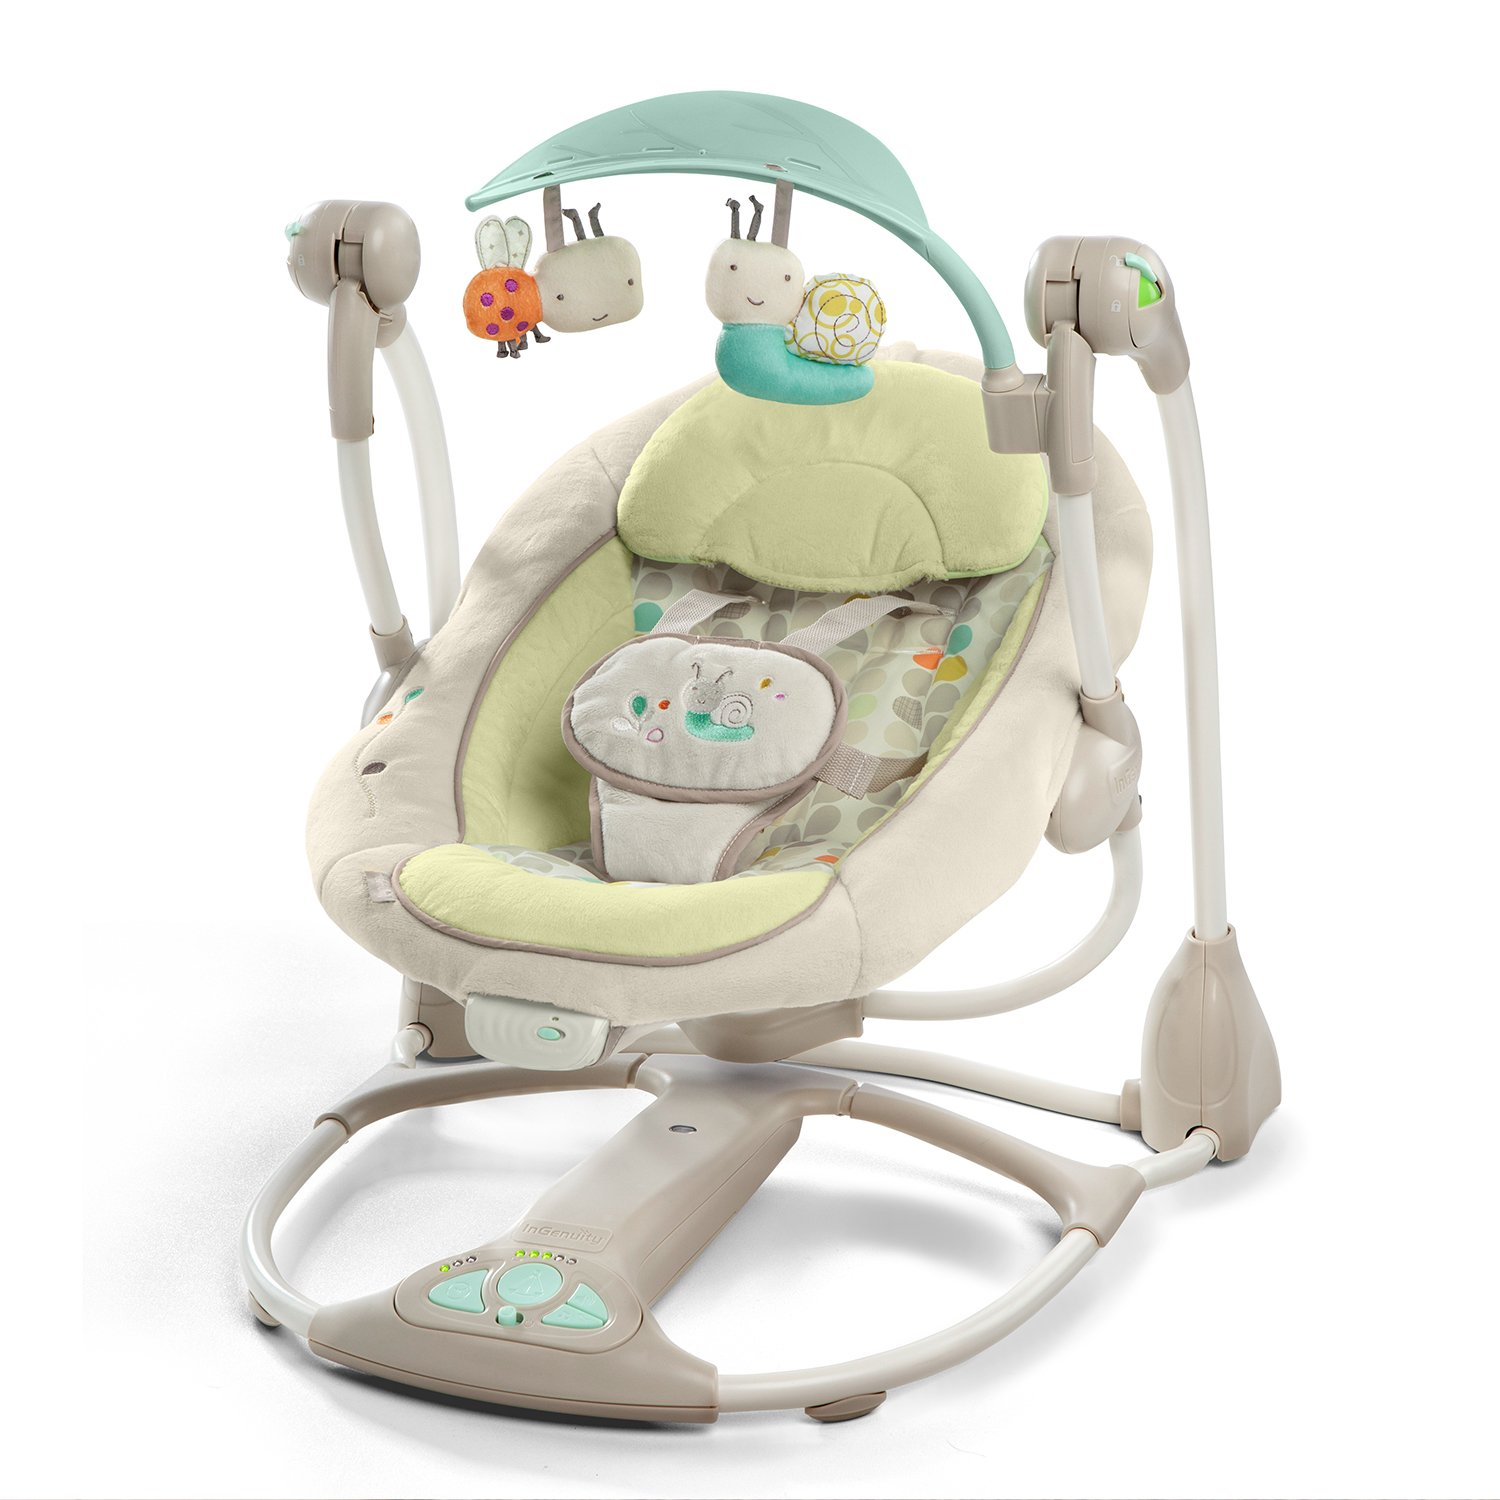 SWINGING BOUNCER BRIGHT START Ingenuity Rocker Swing Vibrating Melodies LADYBIRS Bright Starts 60198